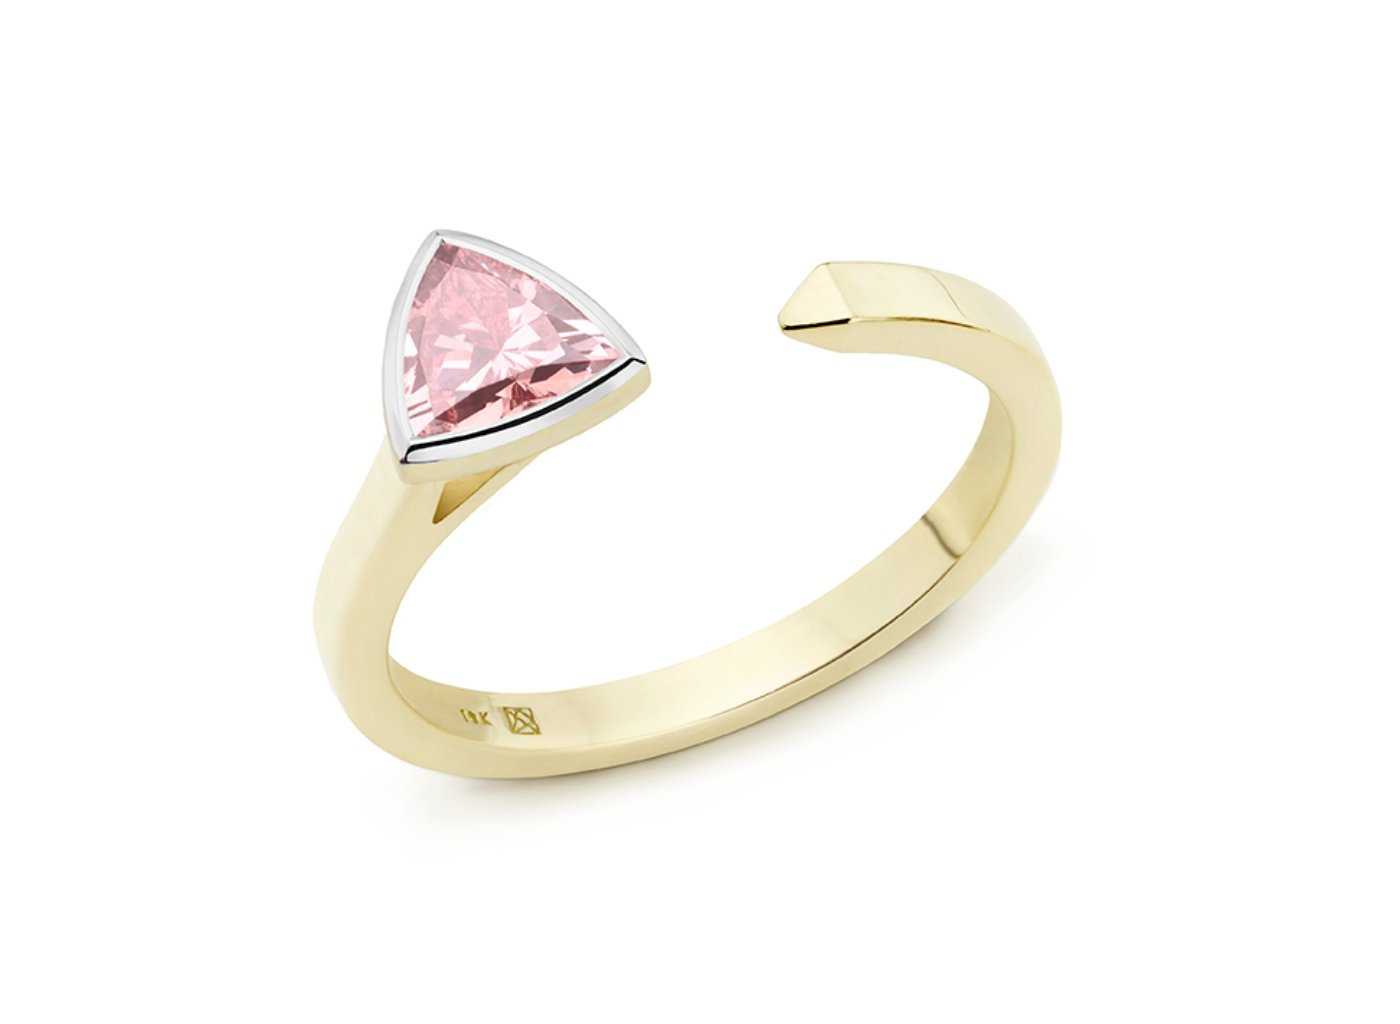 Side view of Trillion open top 3/8 carat ring with pink diamond